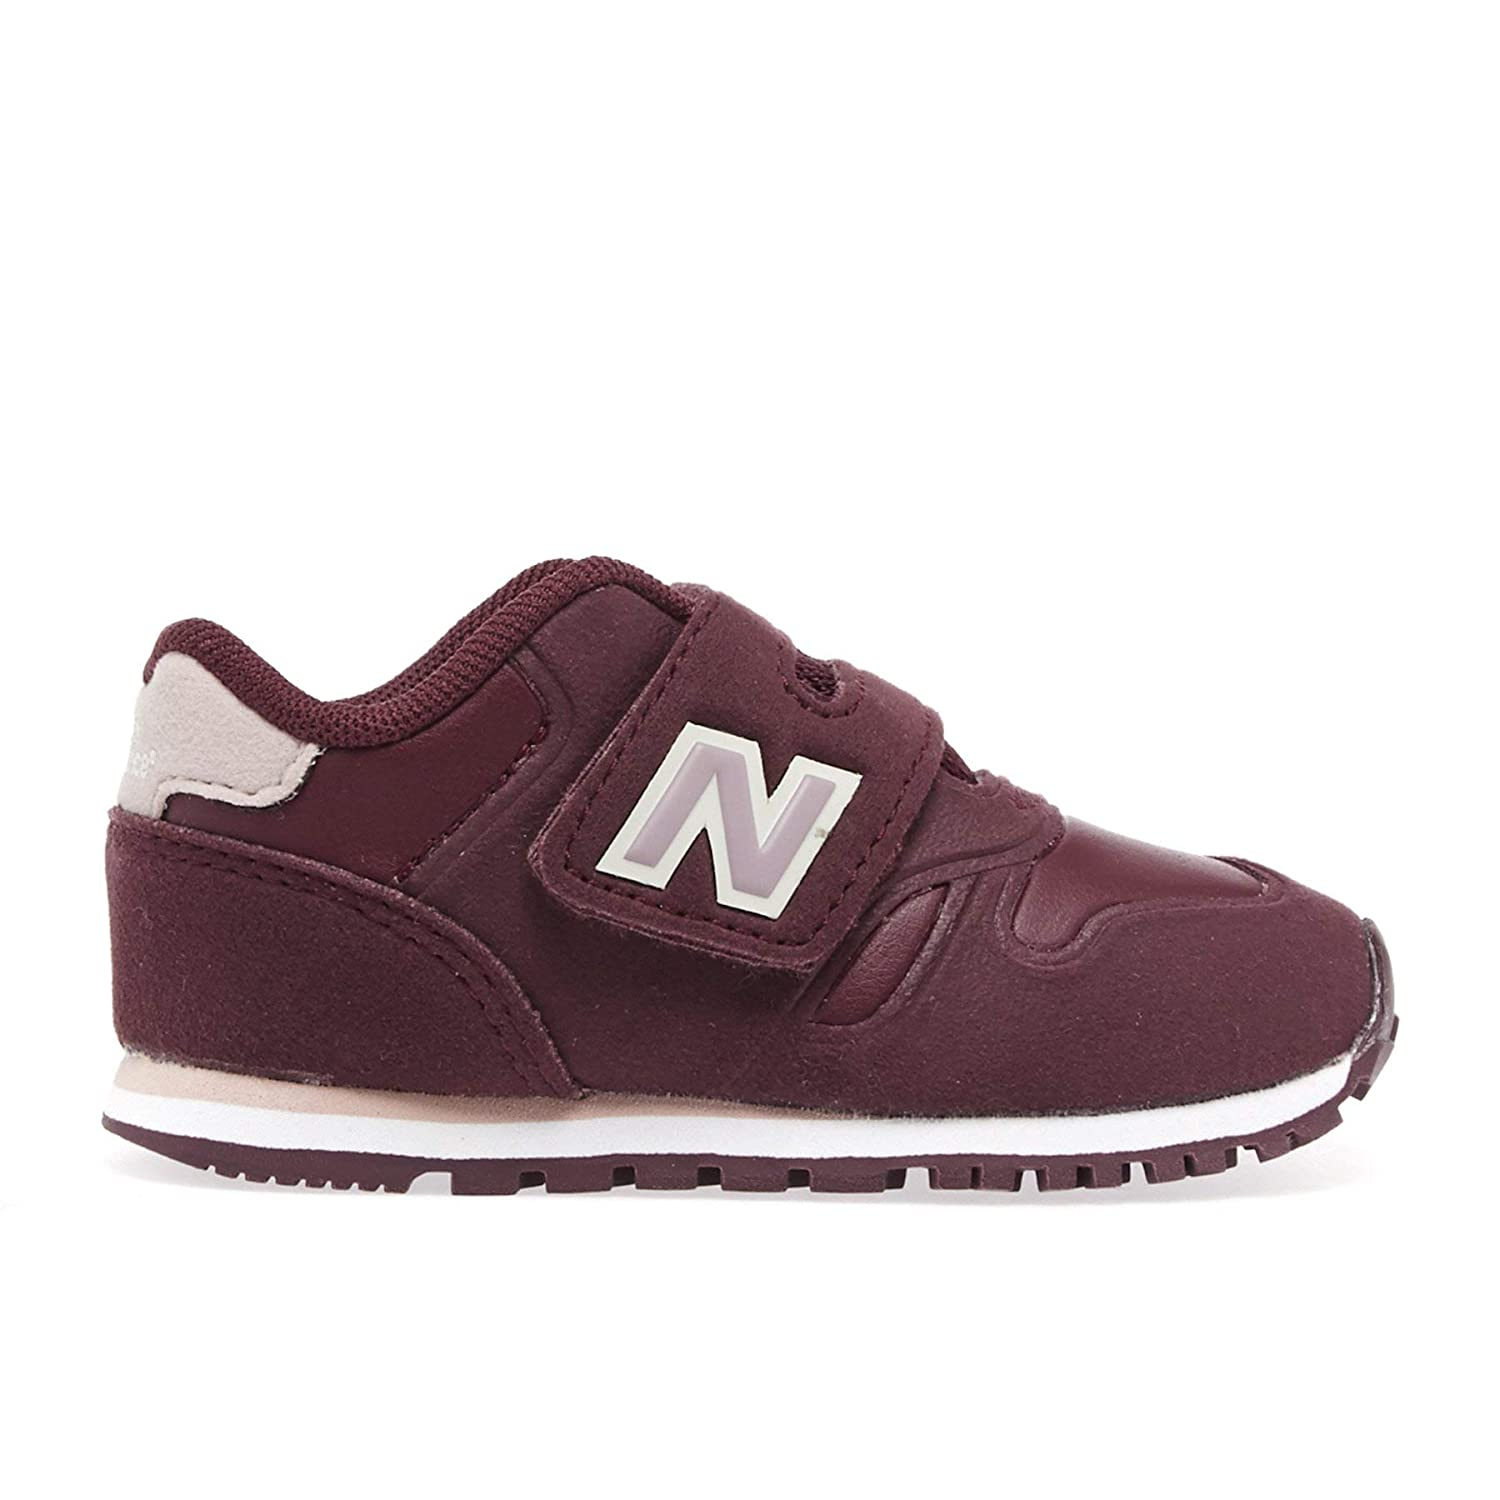 New Balance Infant 373 Velcro Kids Shoes 6.5 M US Toddler Burgundy